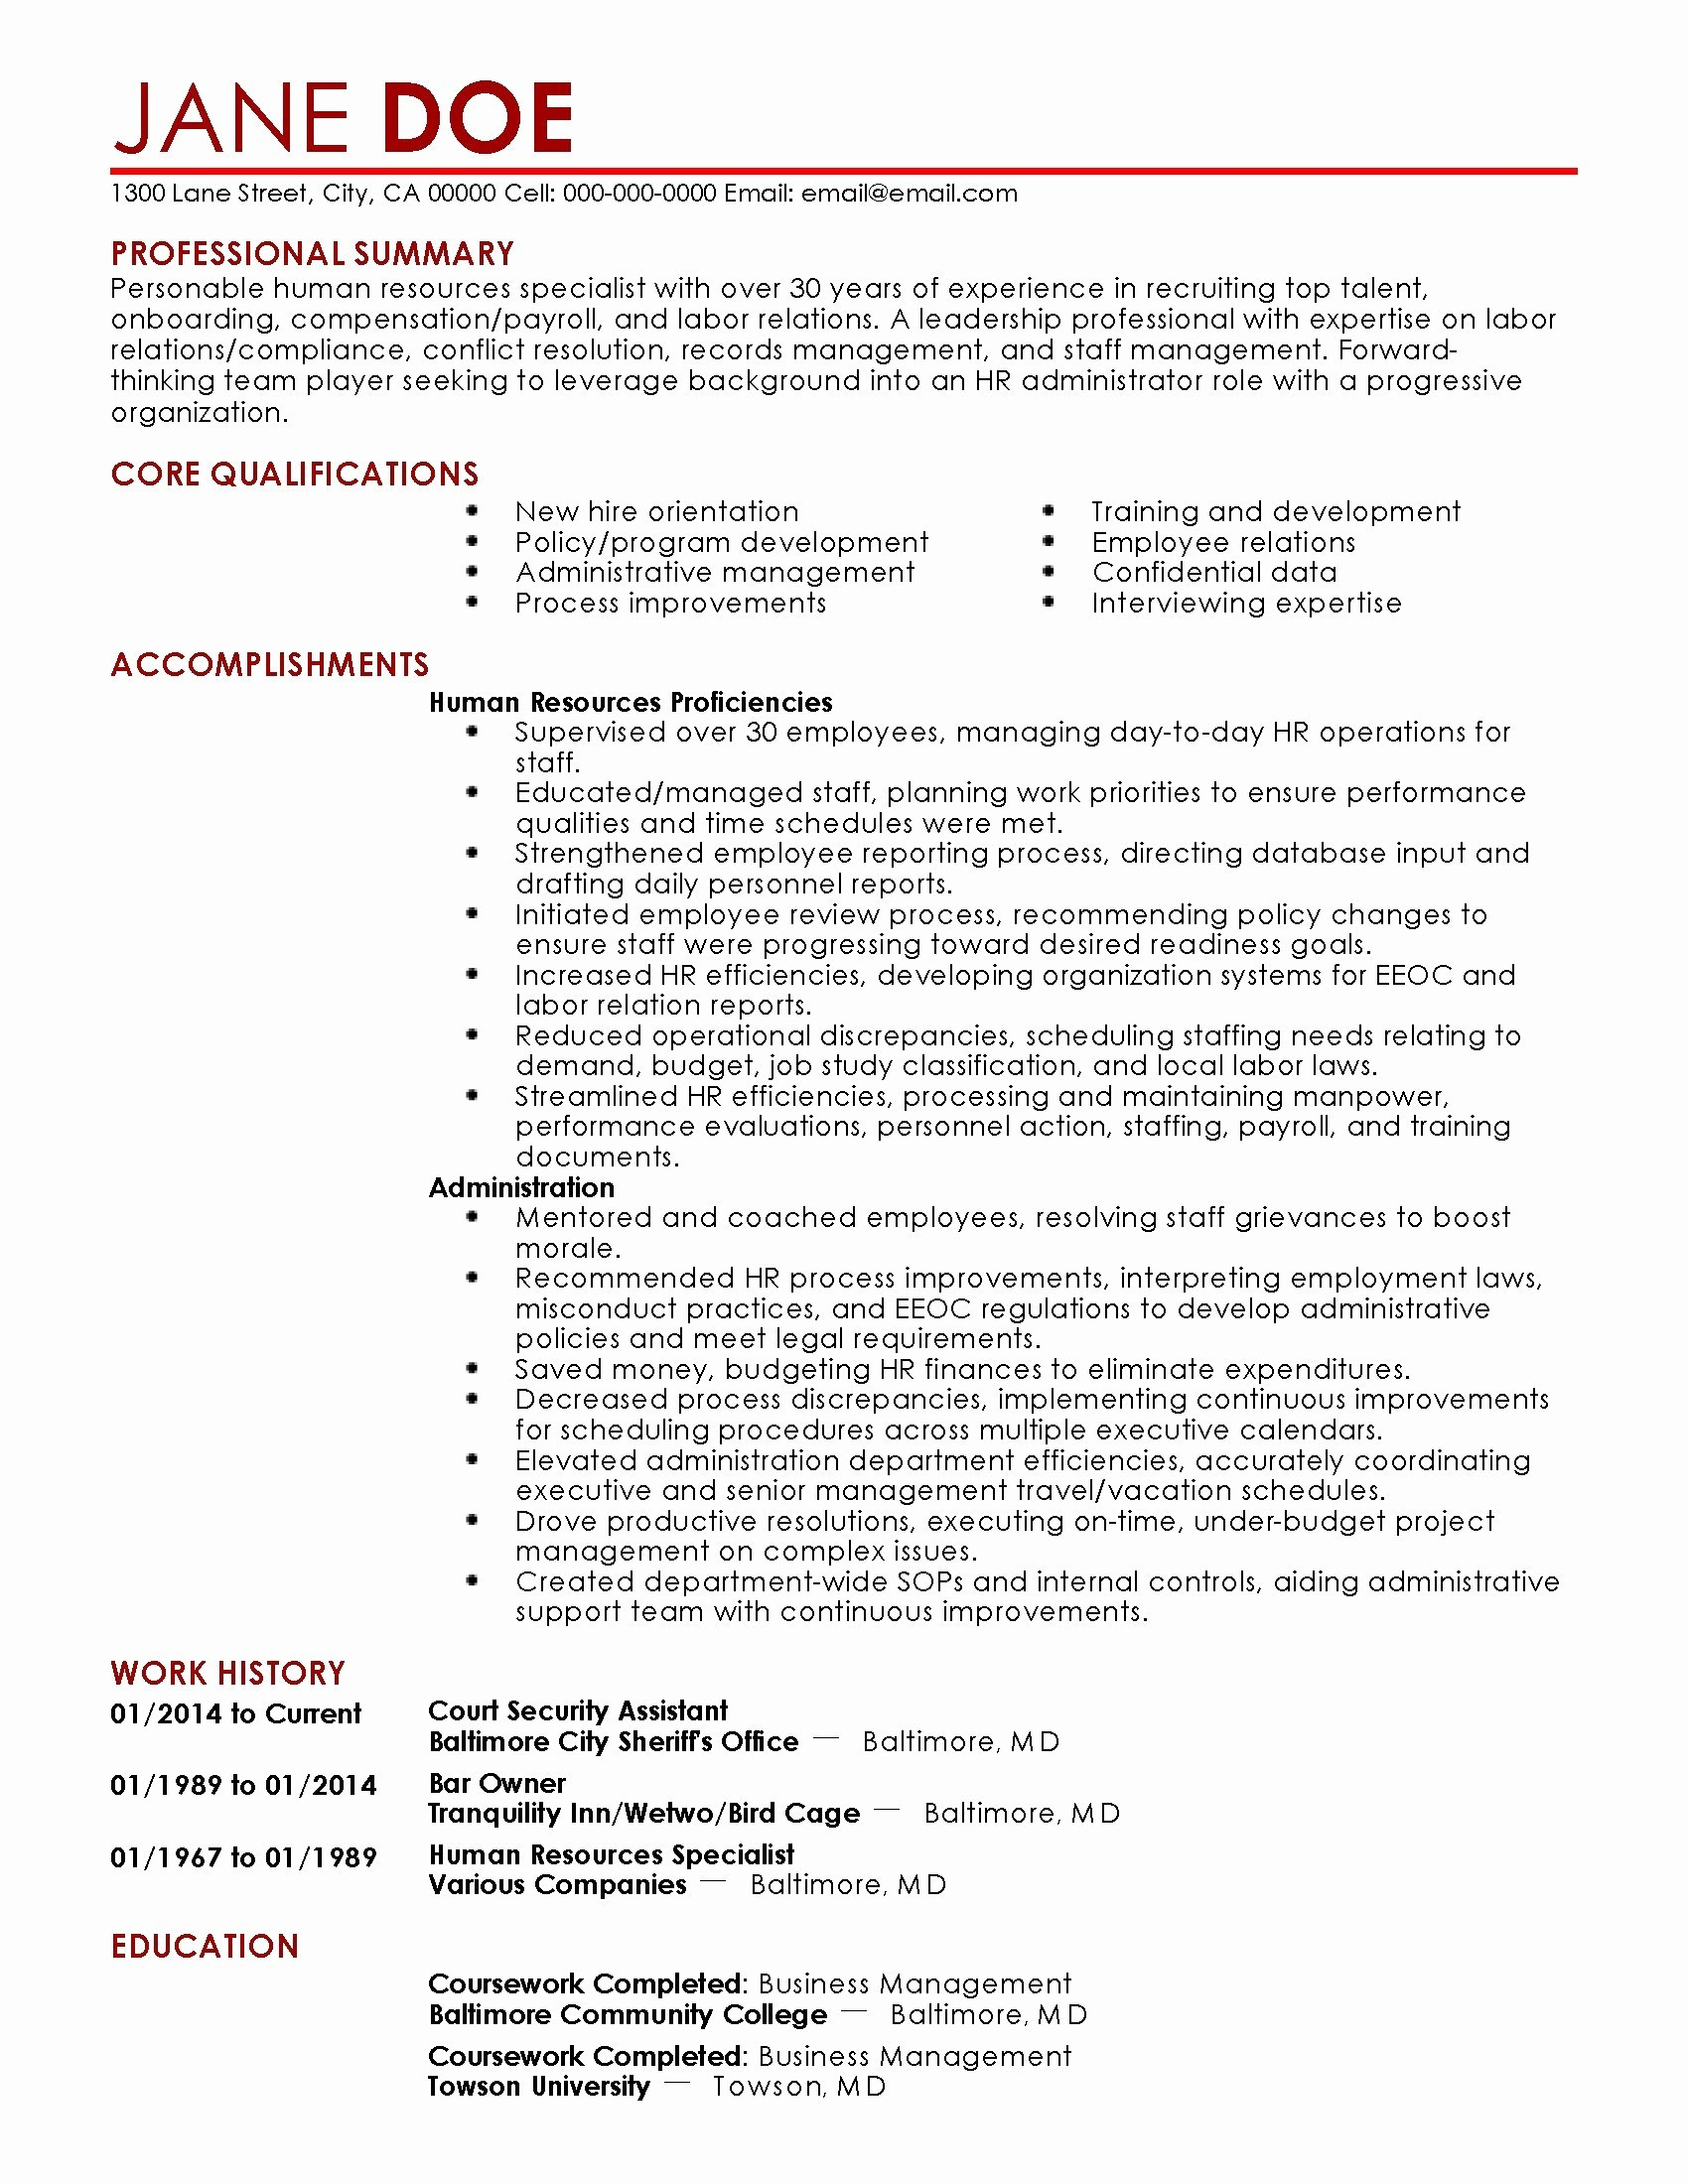 resume template for medical assistant Collection-Medical assistant resume template lovely medical assistant resumes new medical resumes 0d bizmancan 19-q